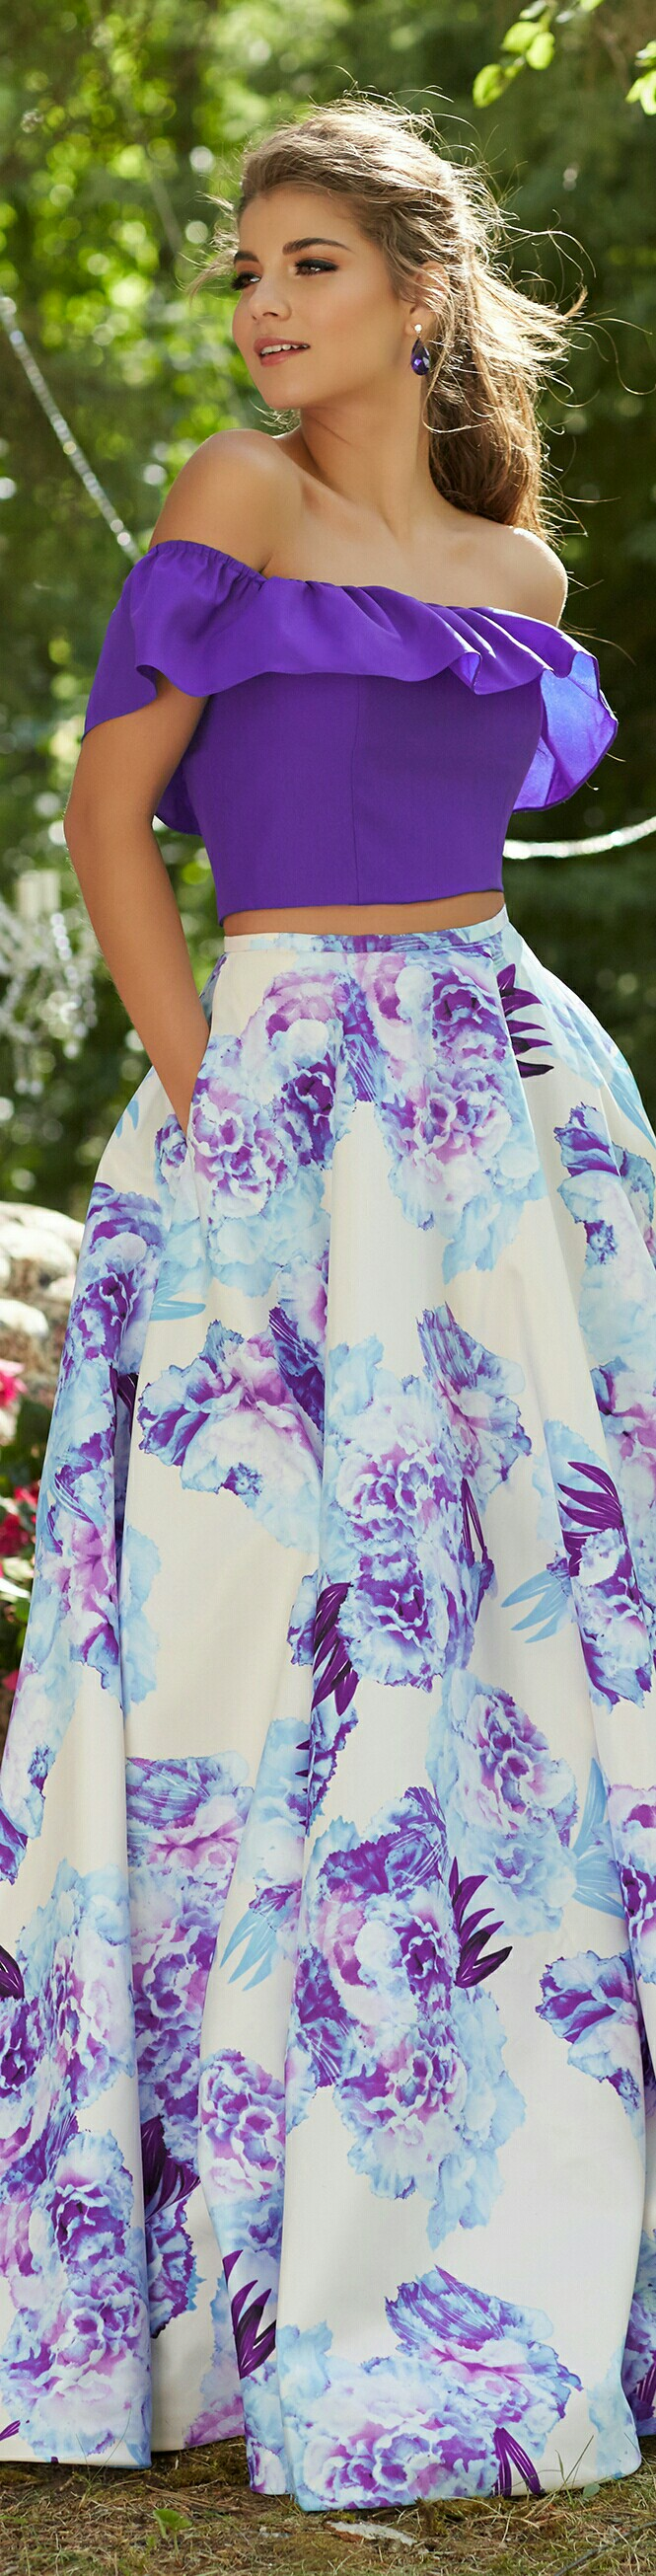 Two Piece Prom Dress With Off The Shoulder Neckline And Floral